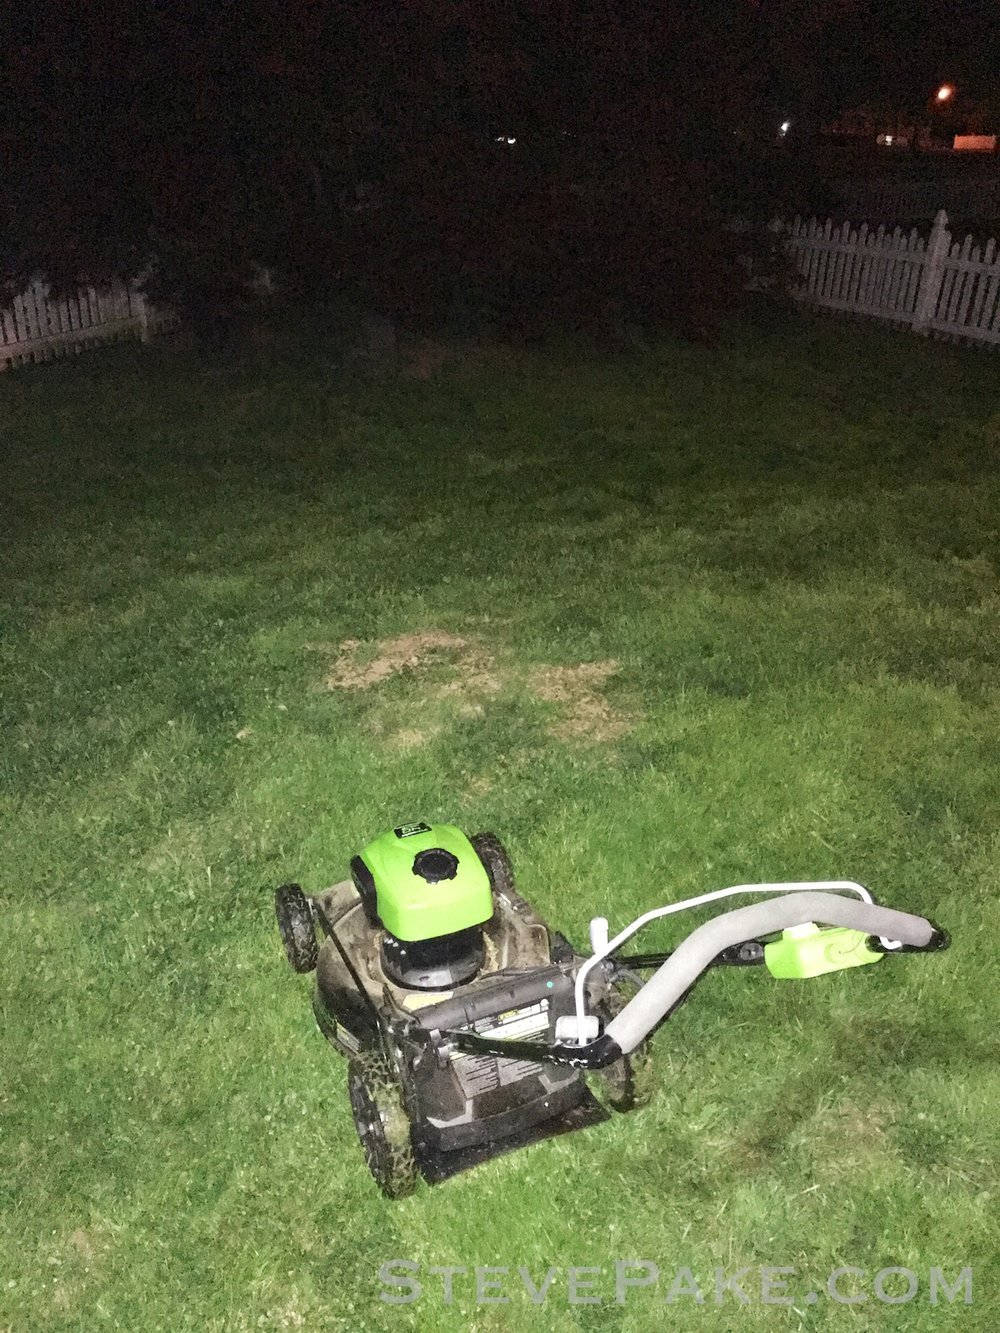 Because everybody loves waiting for a lawn mower battery to recharge and finishing mowing in the dark, right? Had no choice! Rain was coming!